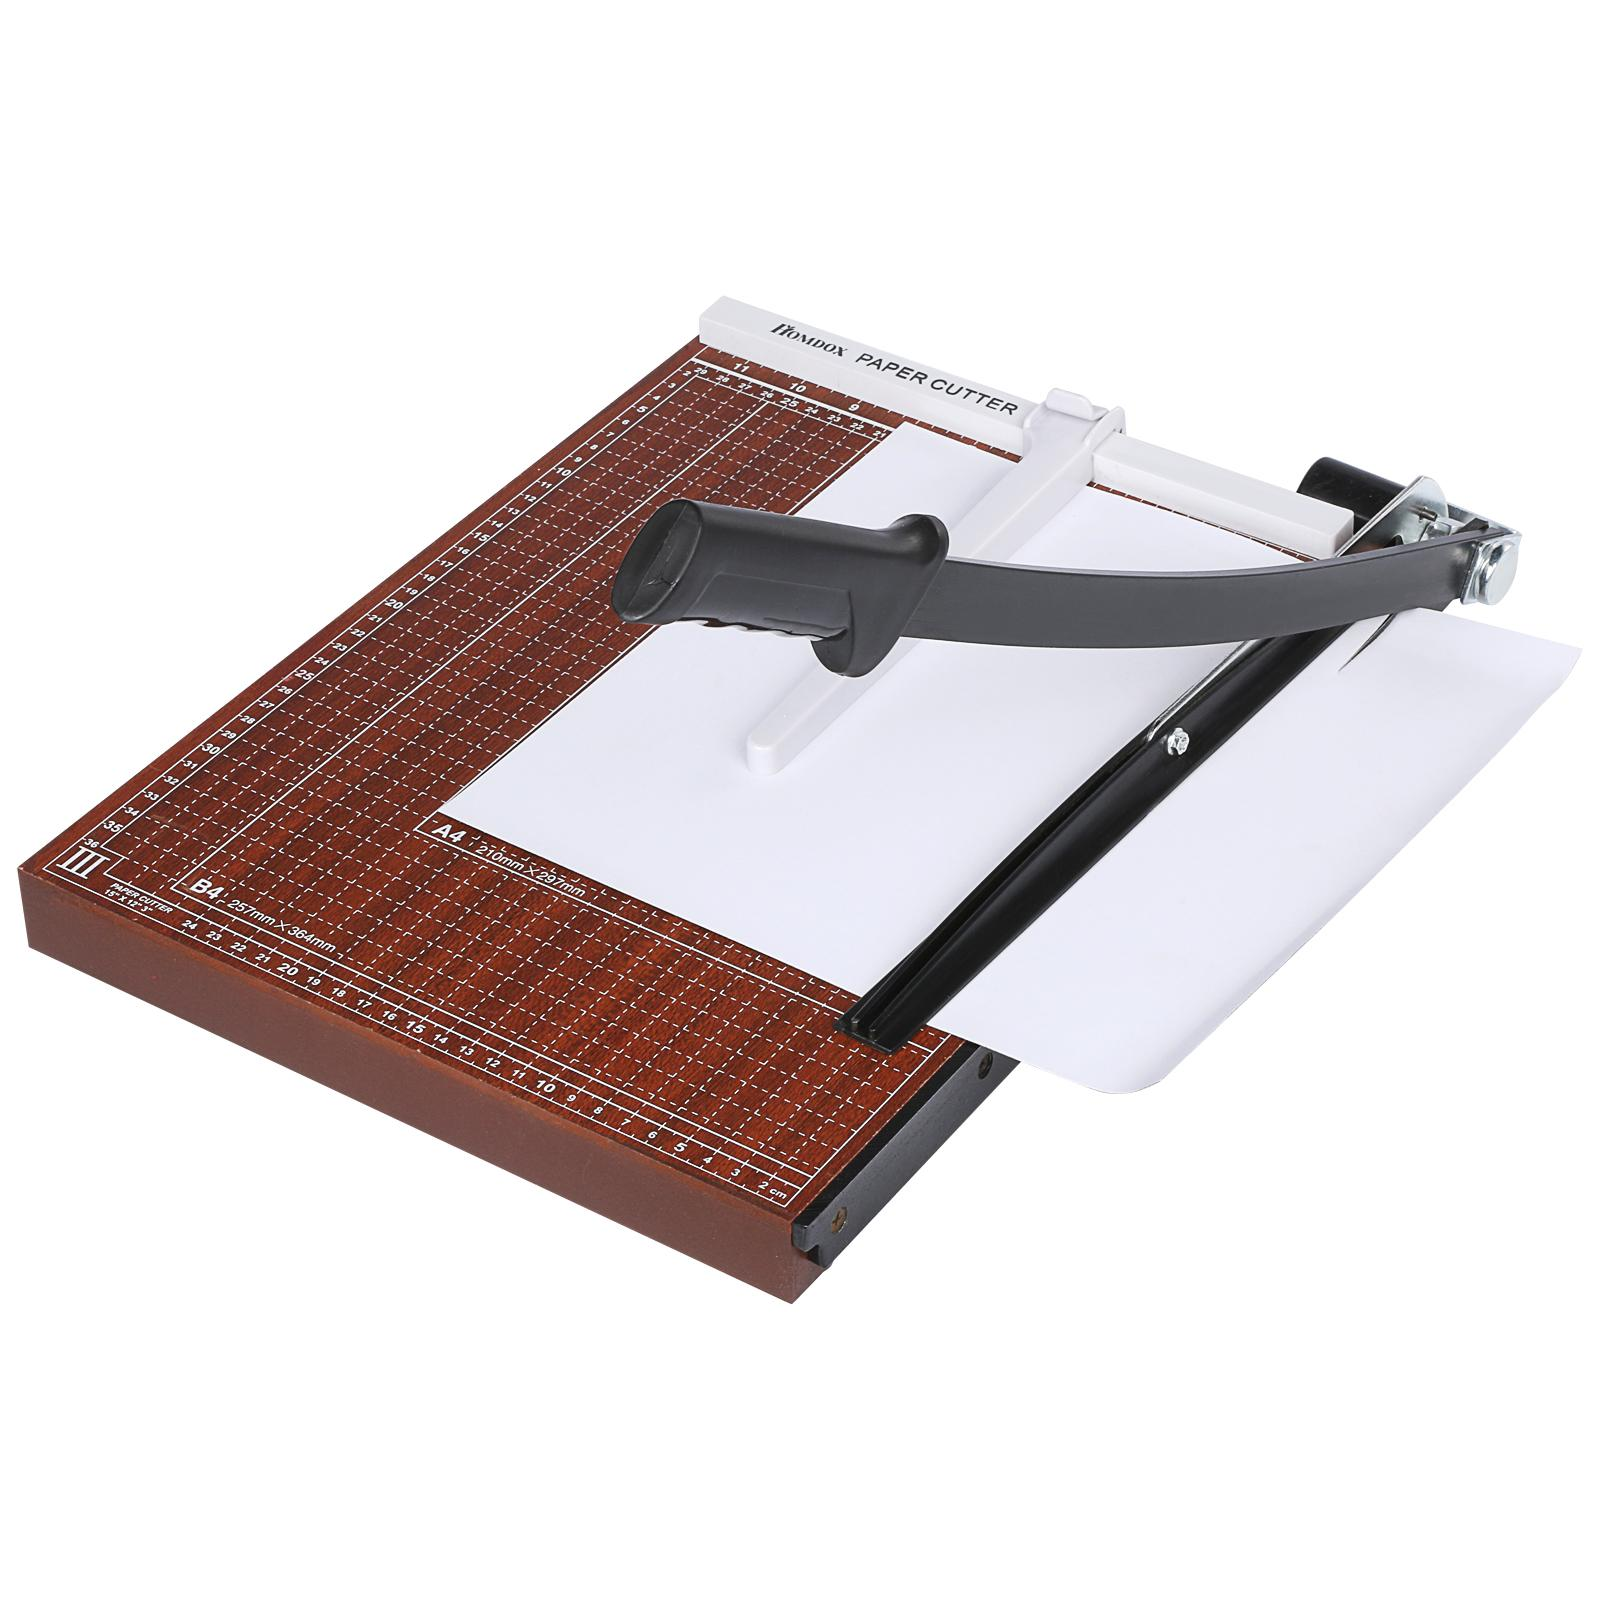 12 SHeets Guillotine Paper Cutter Wooden Heavy Paper Trimmer, Home Office Paper Cutter A4, B5, A5, B6, B7 by Unbrand